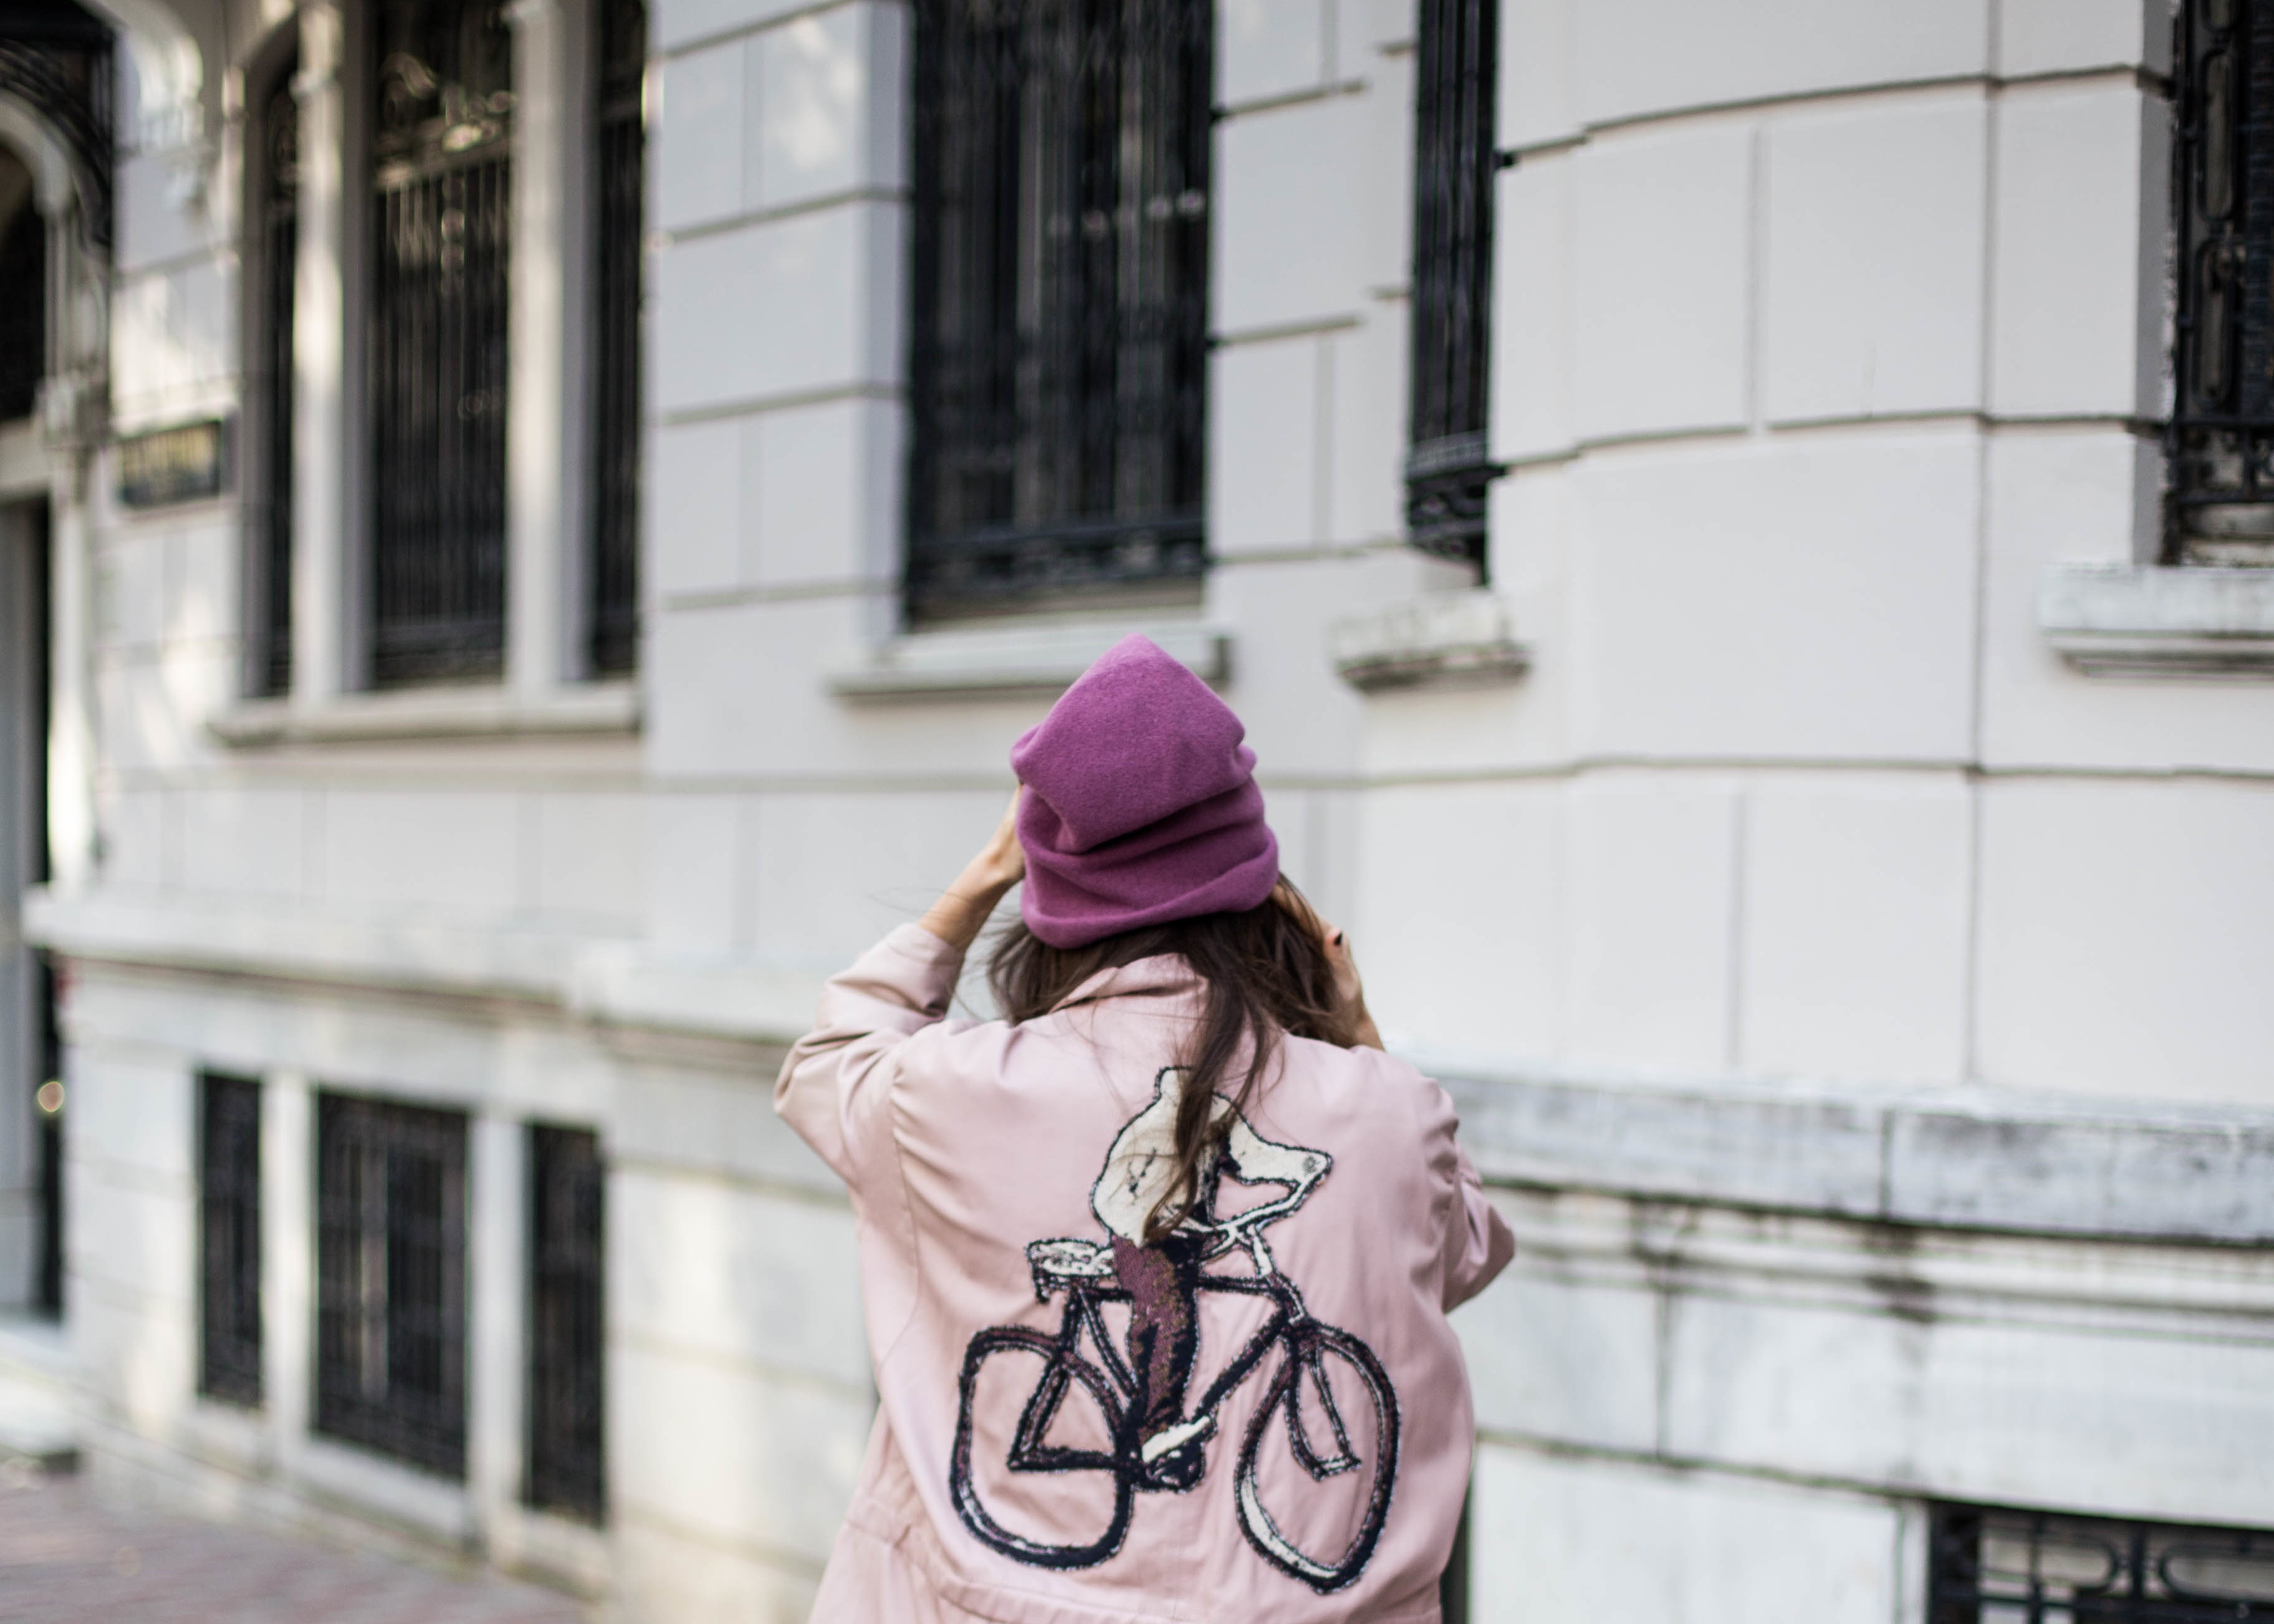 billur saatci, offnegiysem, turkish style blogger, street style, fashion, ootd, blogger, istanbul, bashaques, pink, leather jacket, rayban, zespa aix-en-provence